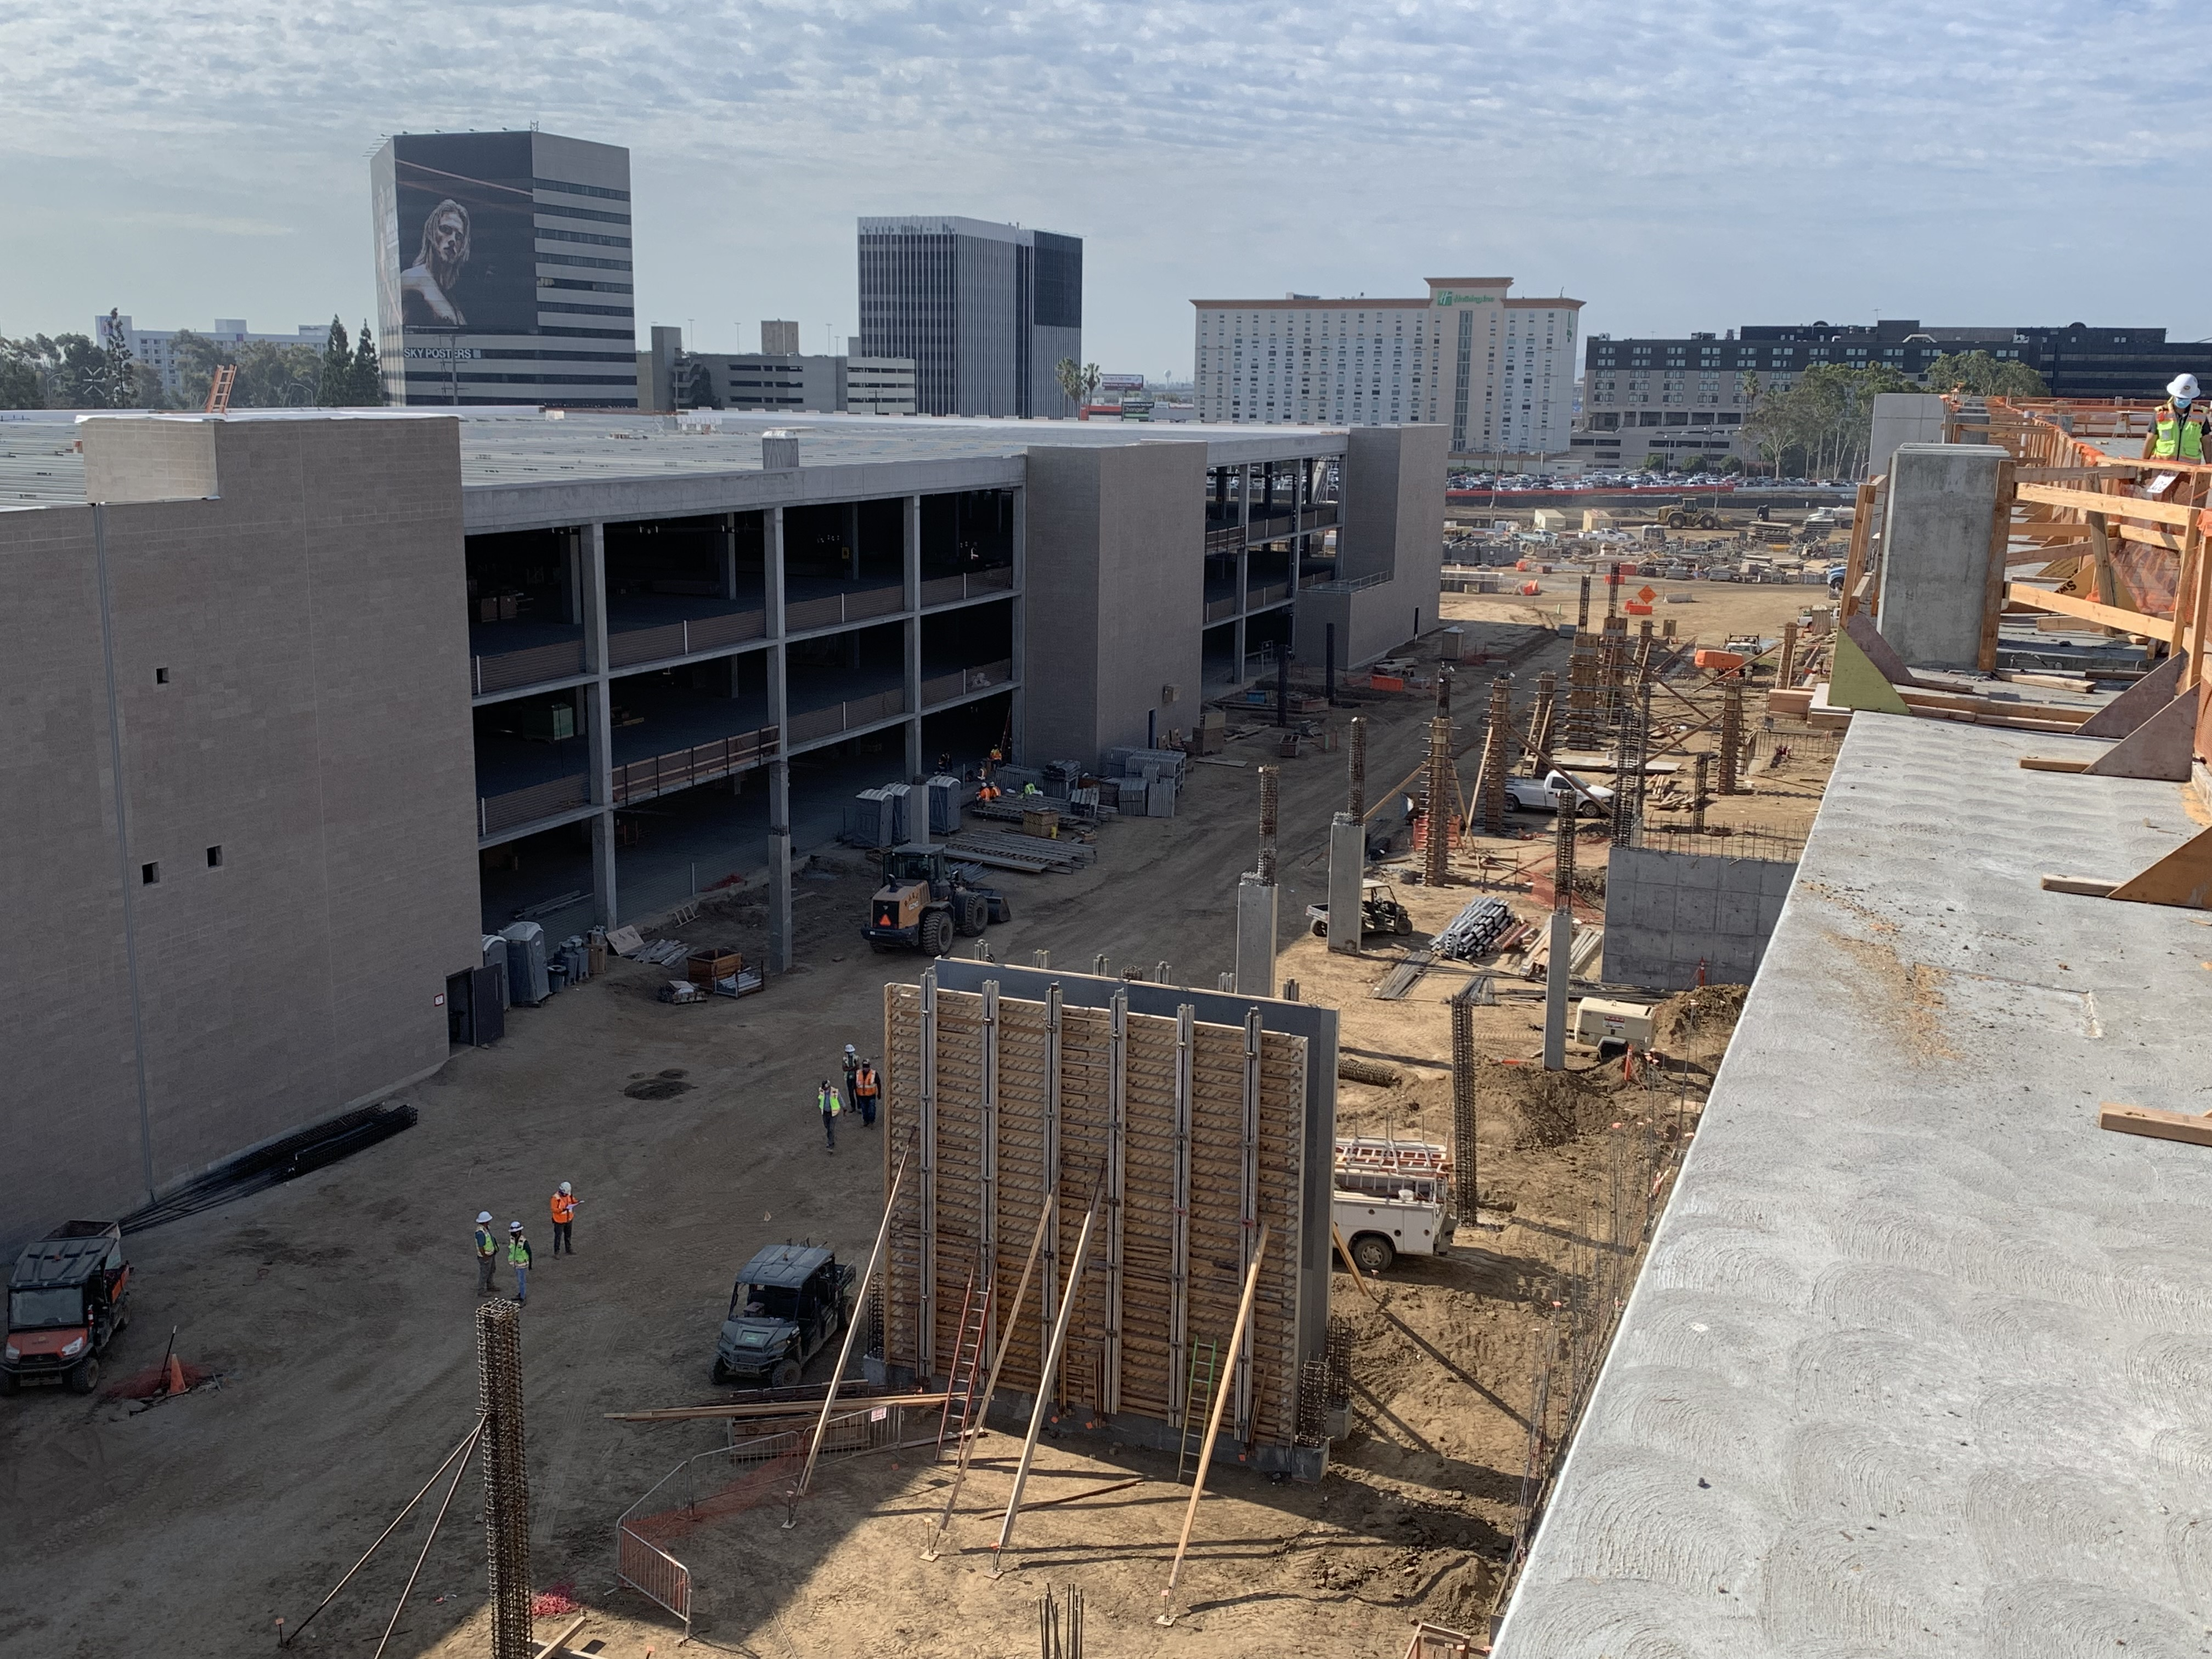 Forming and stripping of columns and shear walls for the connecting bridges and ramps at the Consolidated Rent-A-Car facility in the area between the Idle Storage and Quick Turn Around buildings.